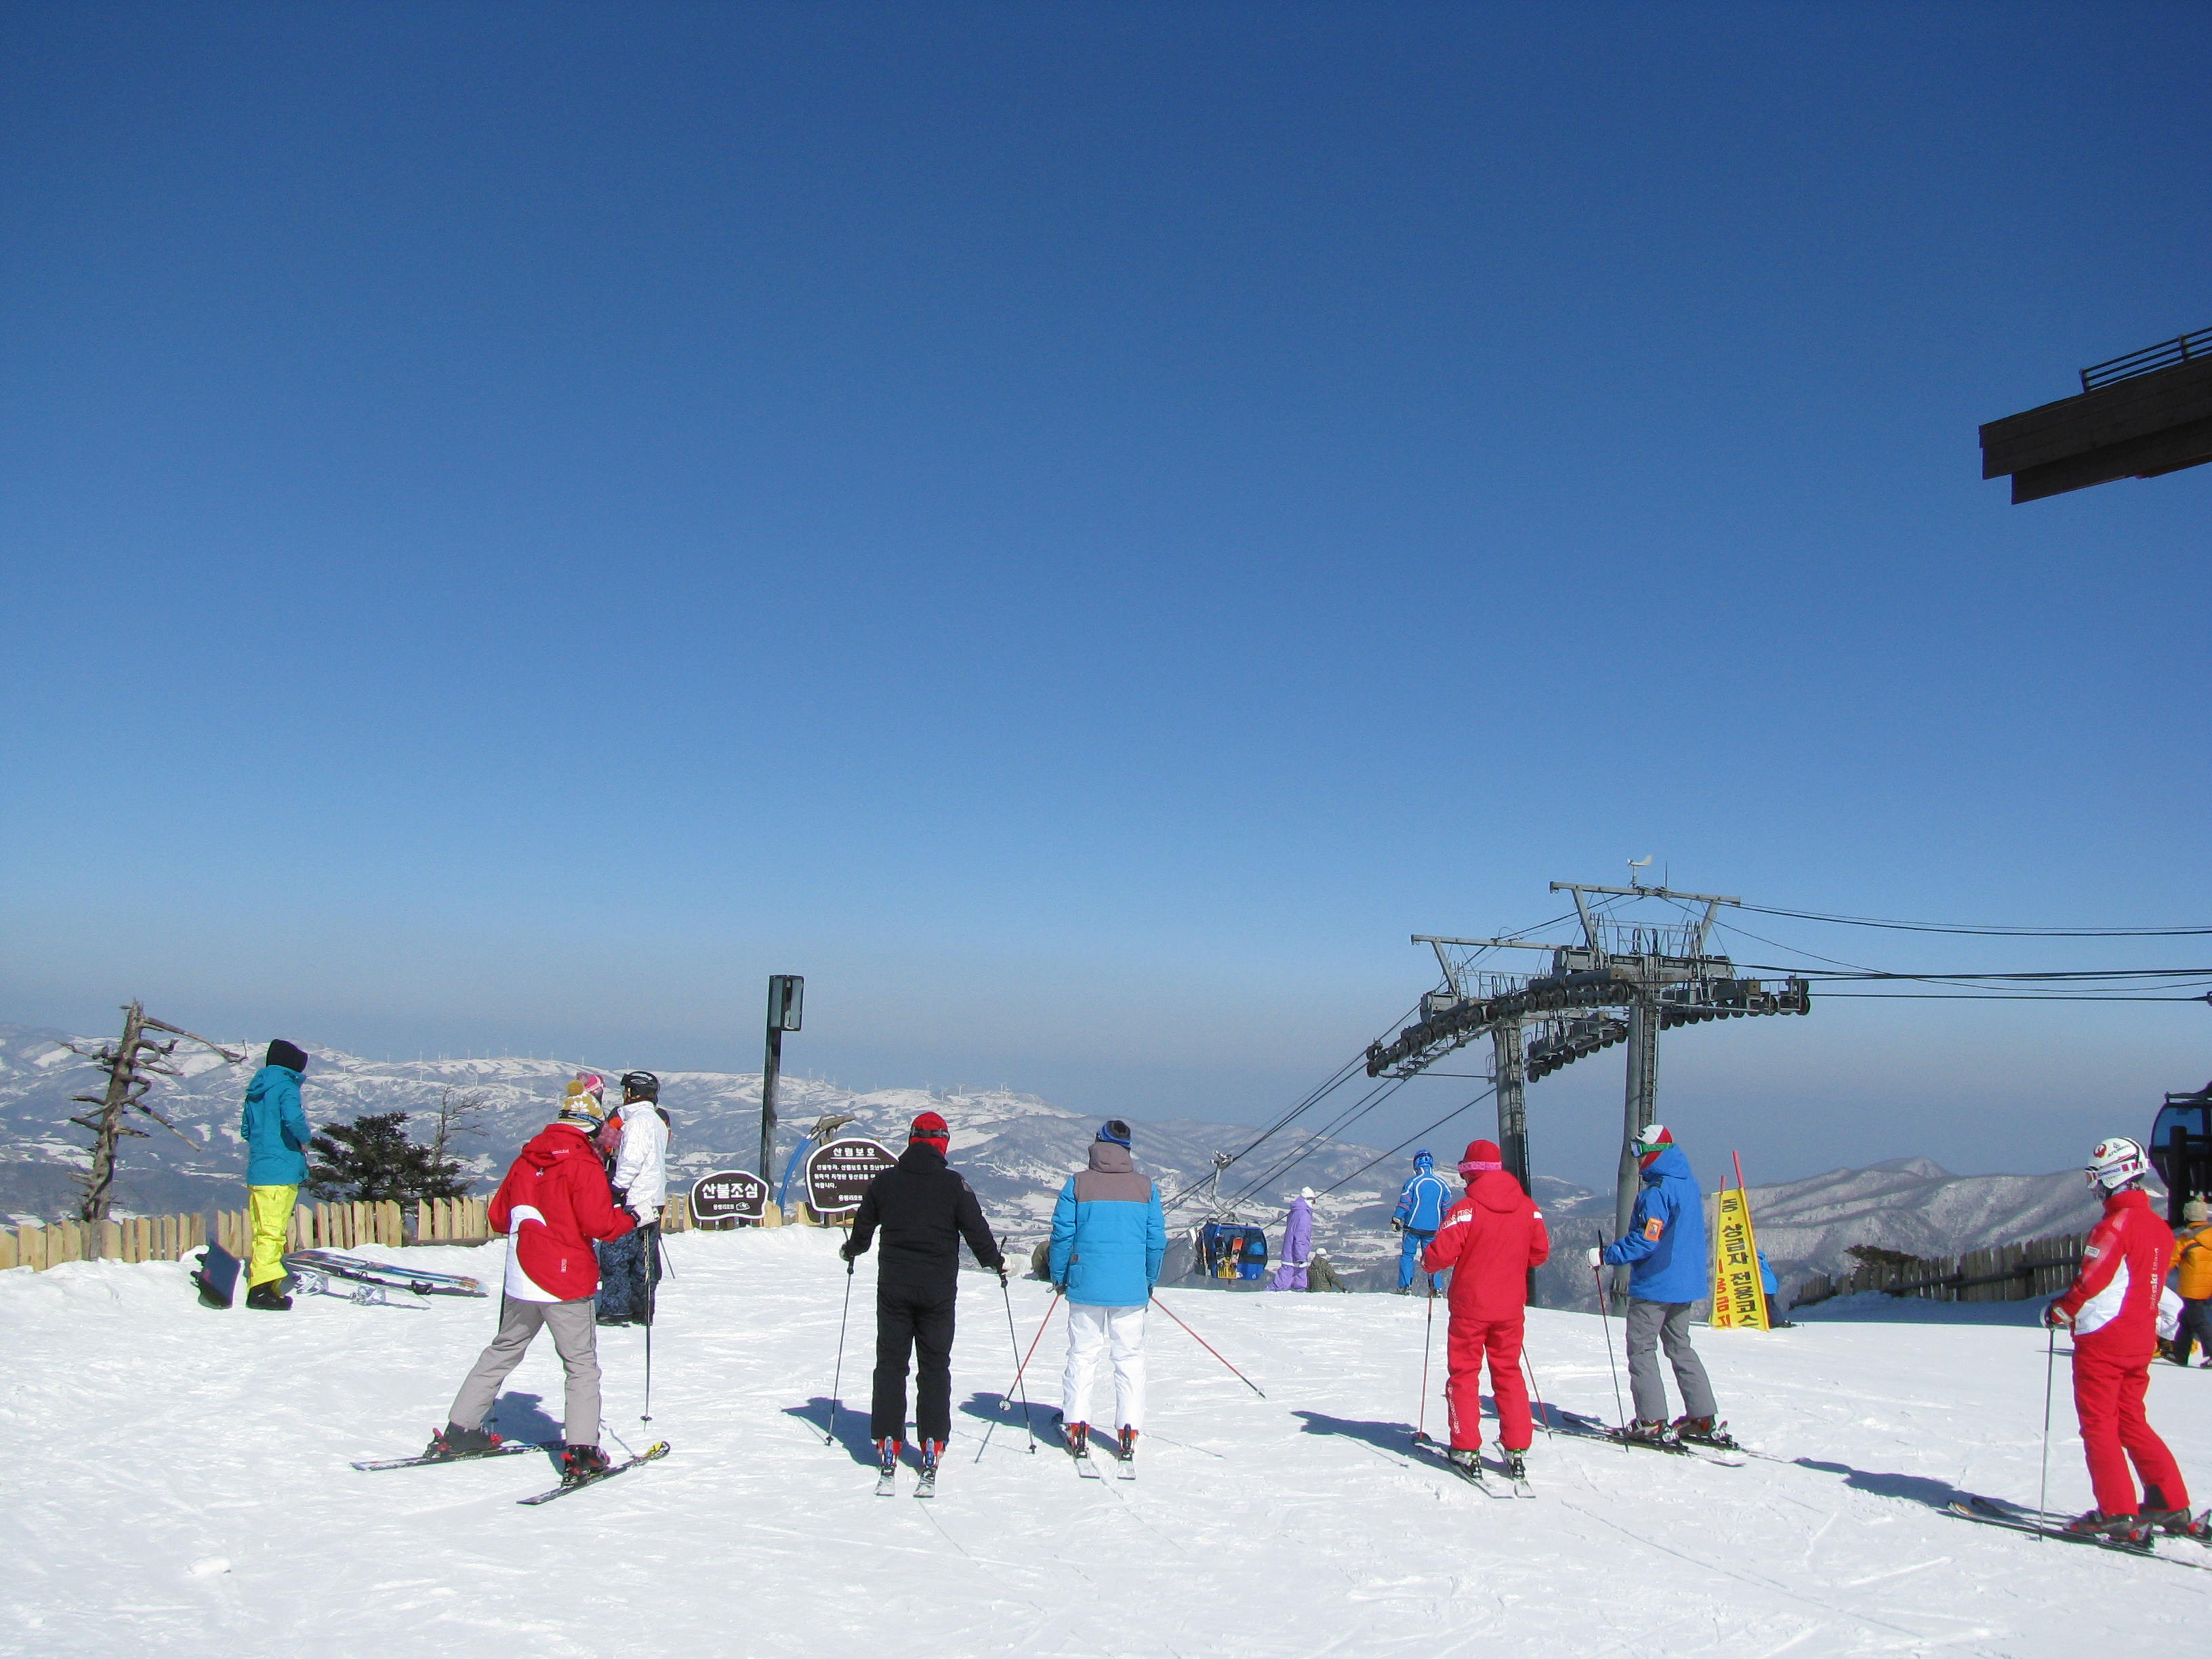 asia's 10 top ski resorts | cnn travel